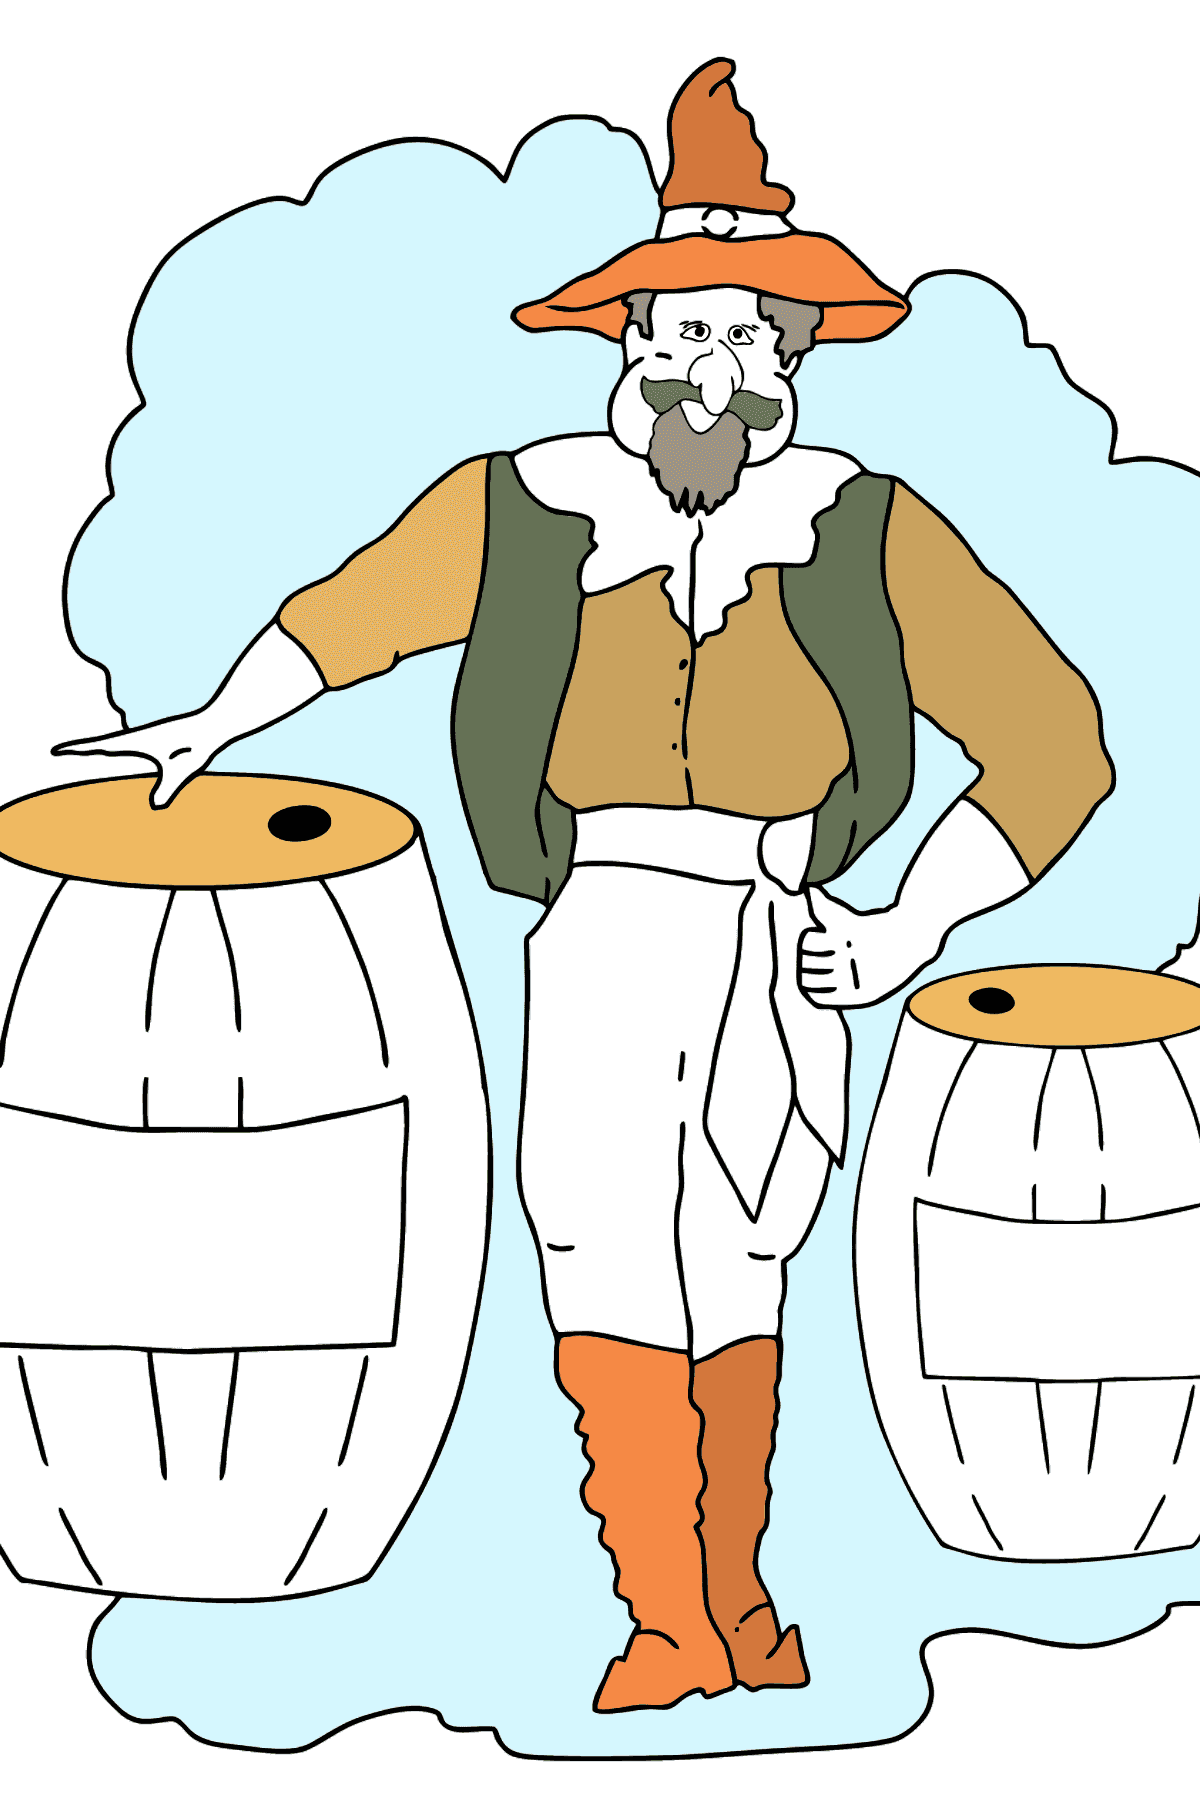 Coloring Page - A Pirate Loves Lemonade - Coloring Pages for Kids